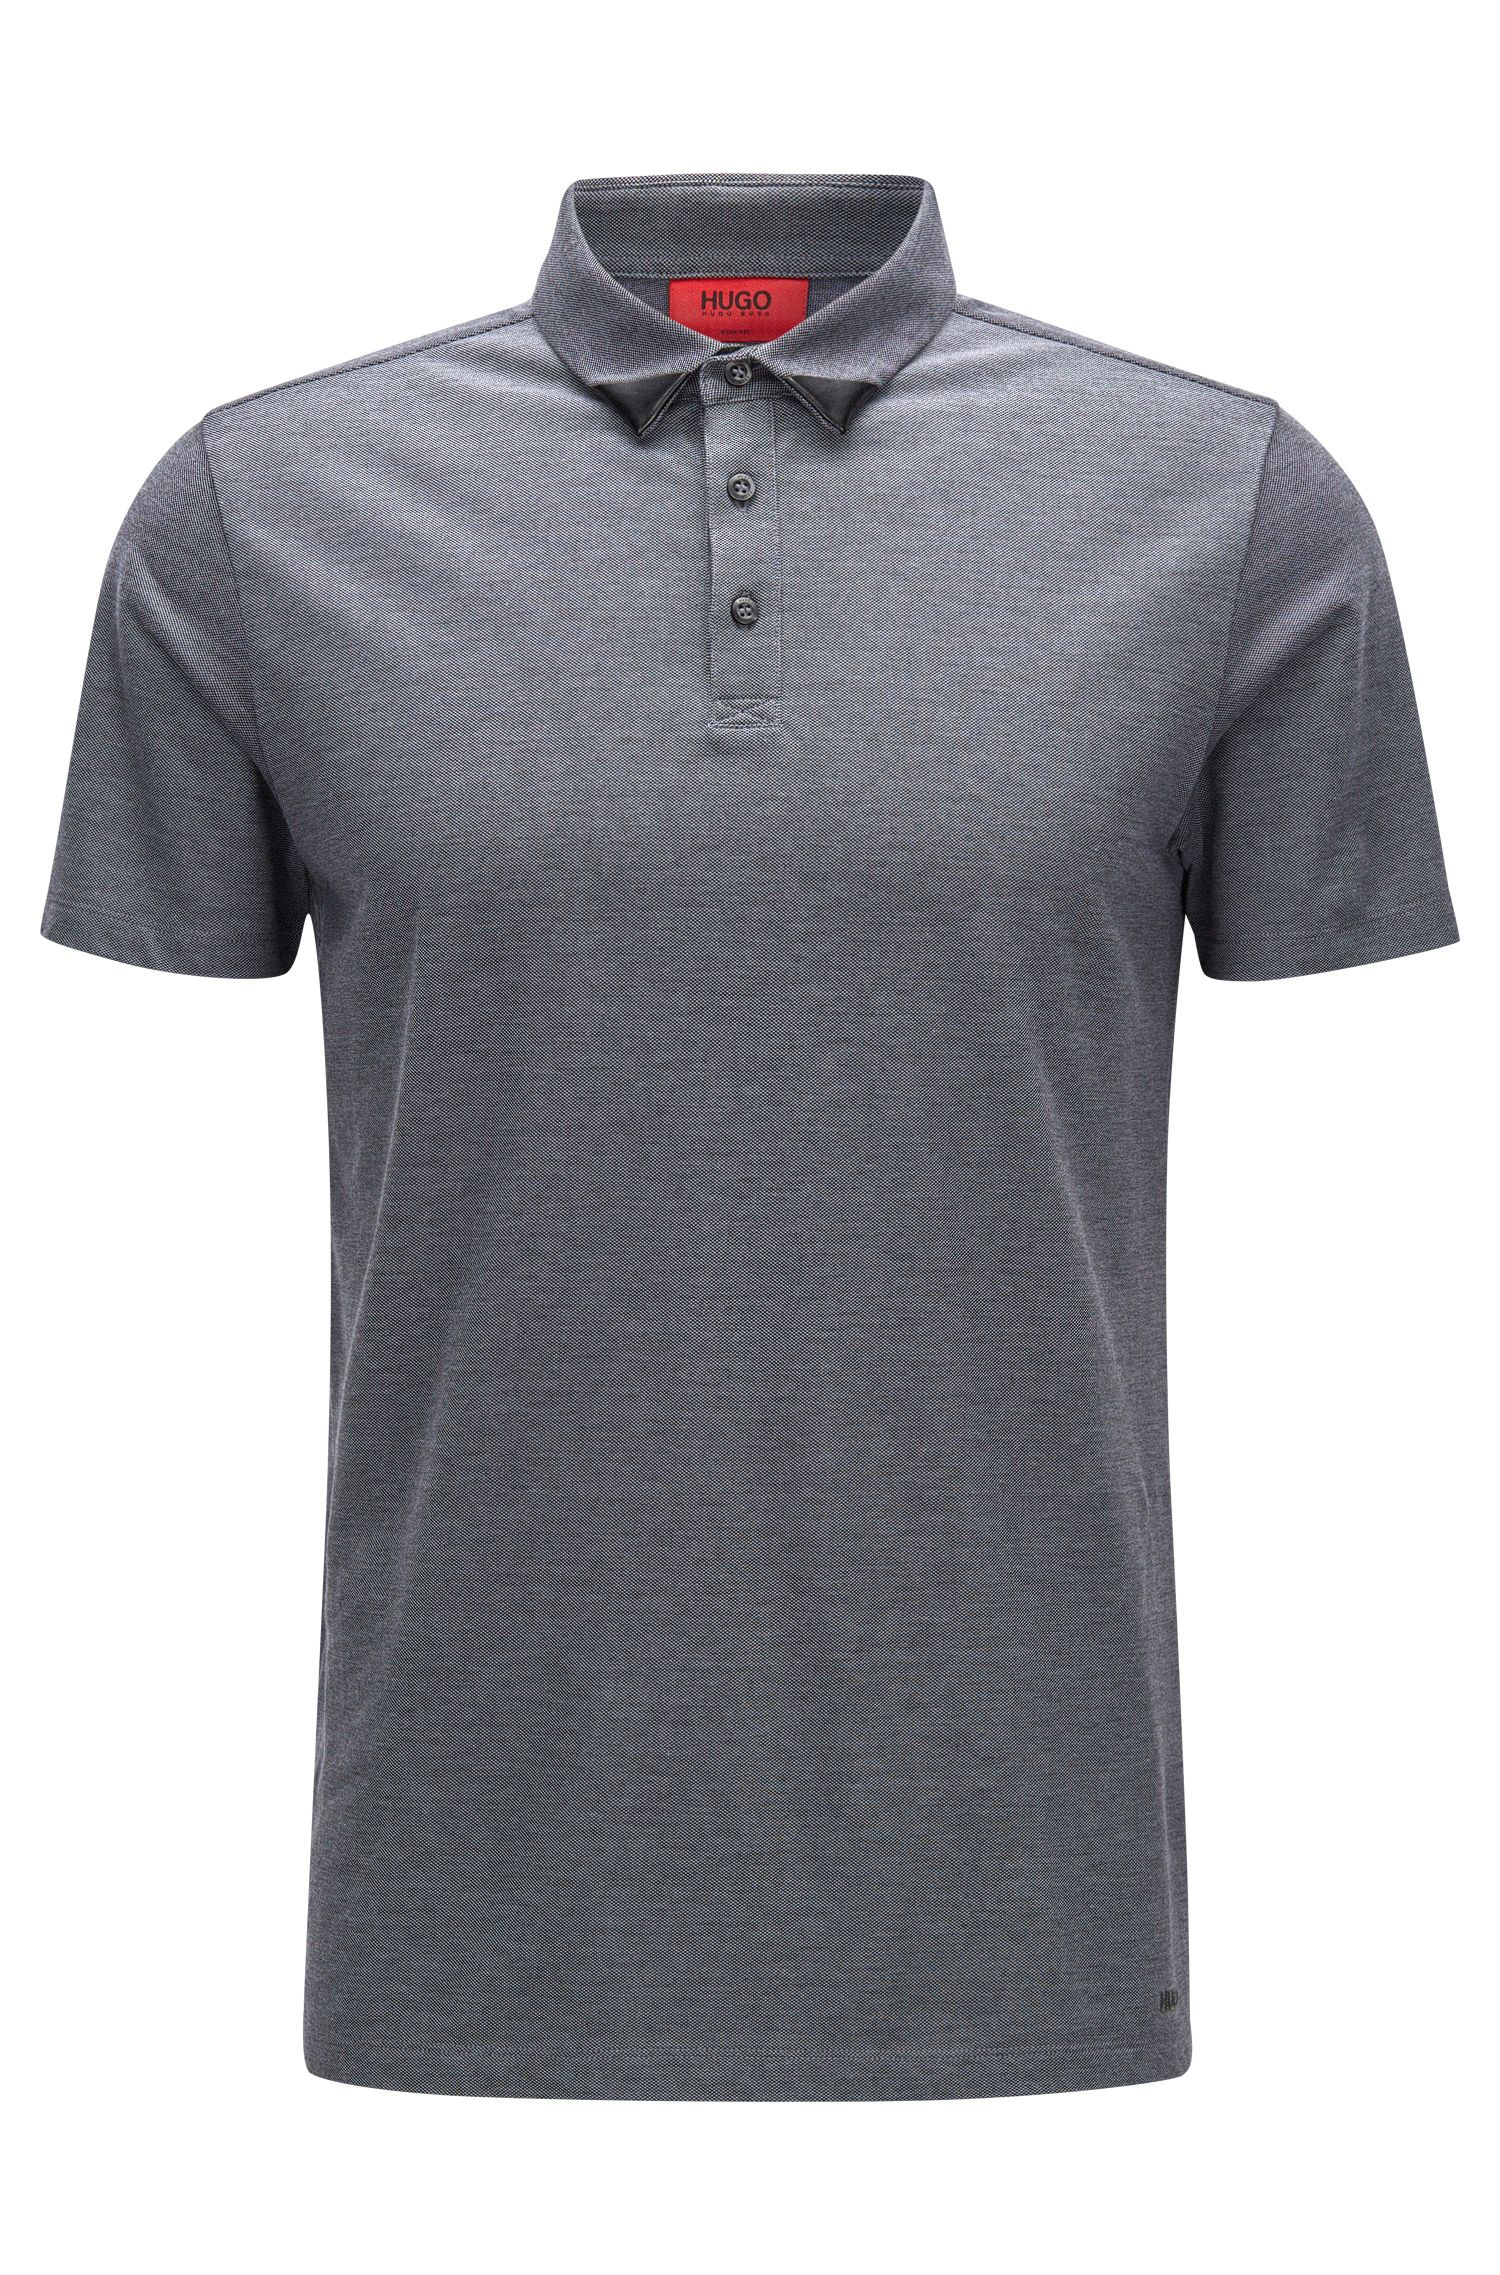 Slim-fit two-tone polo shirt in cotton piqué